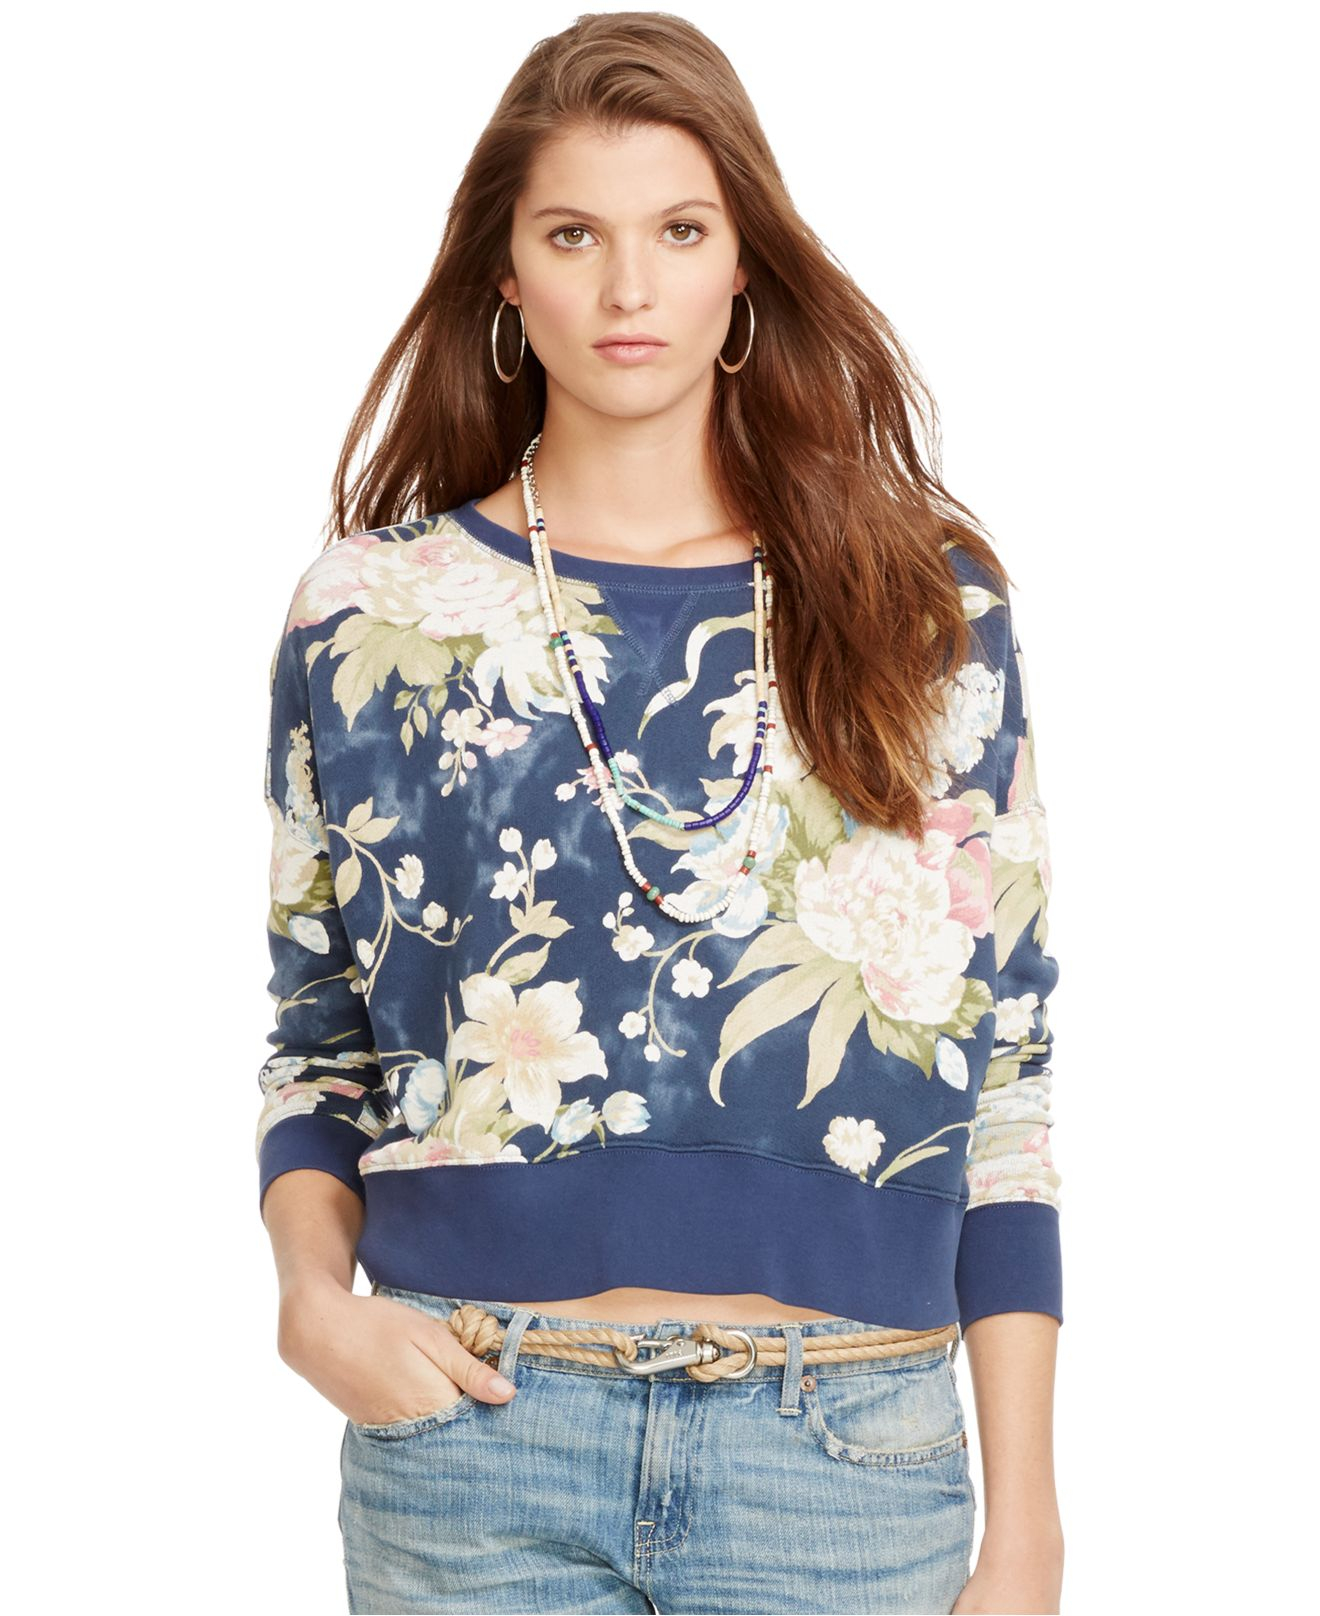 Polo ralph lauren Floral-Print Crew-Neck Sweatshirt in Blue | Lyst